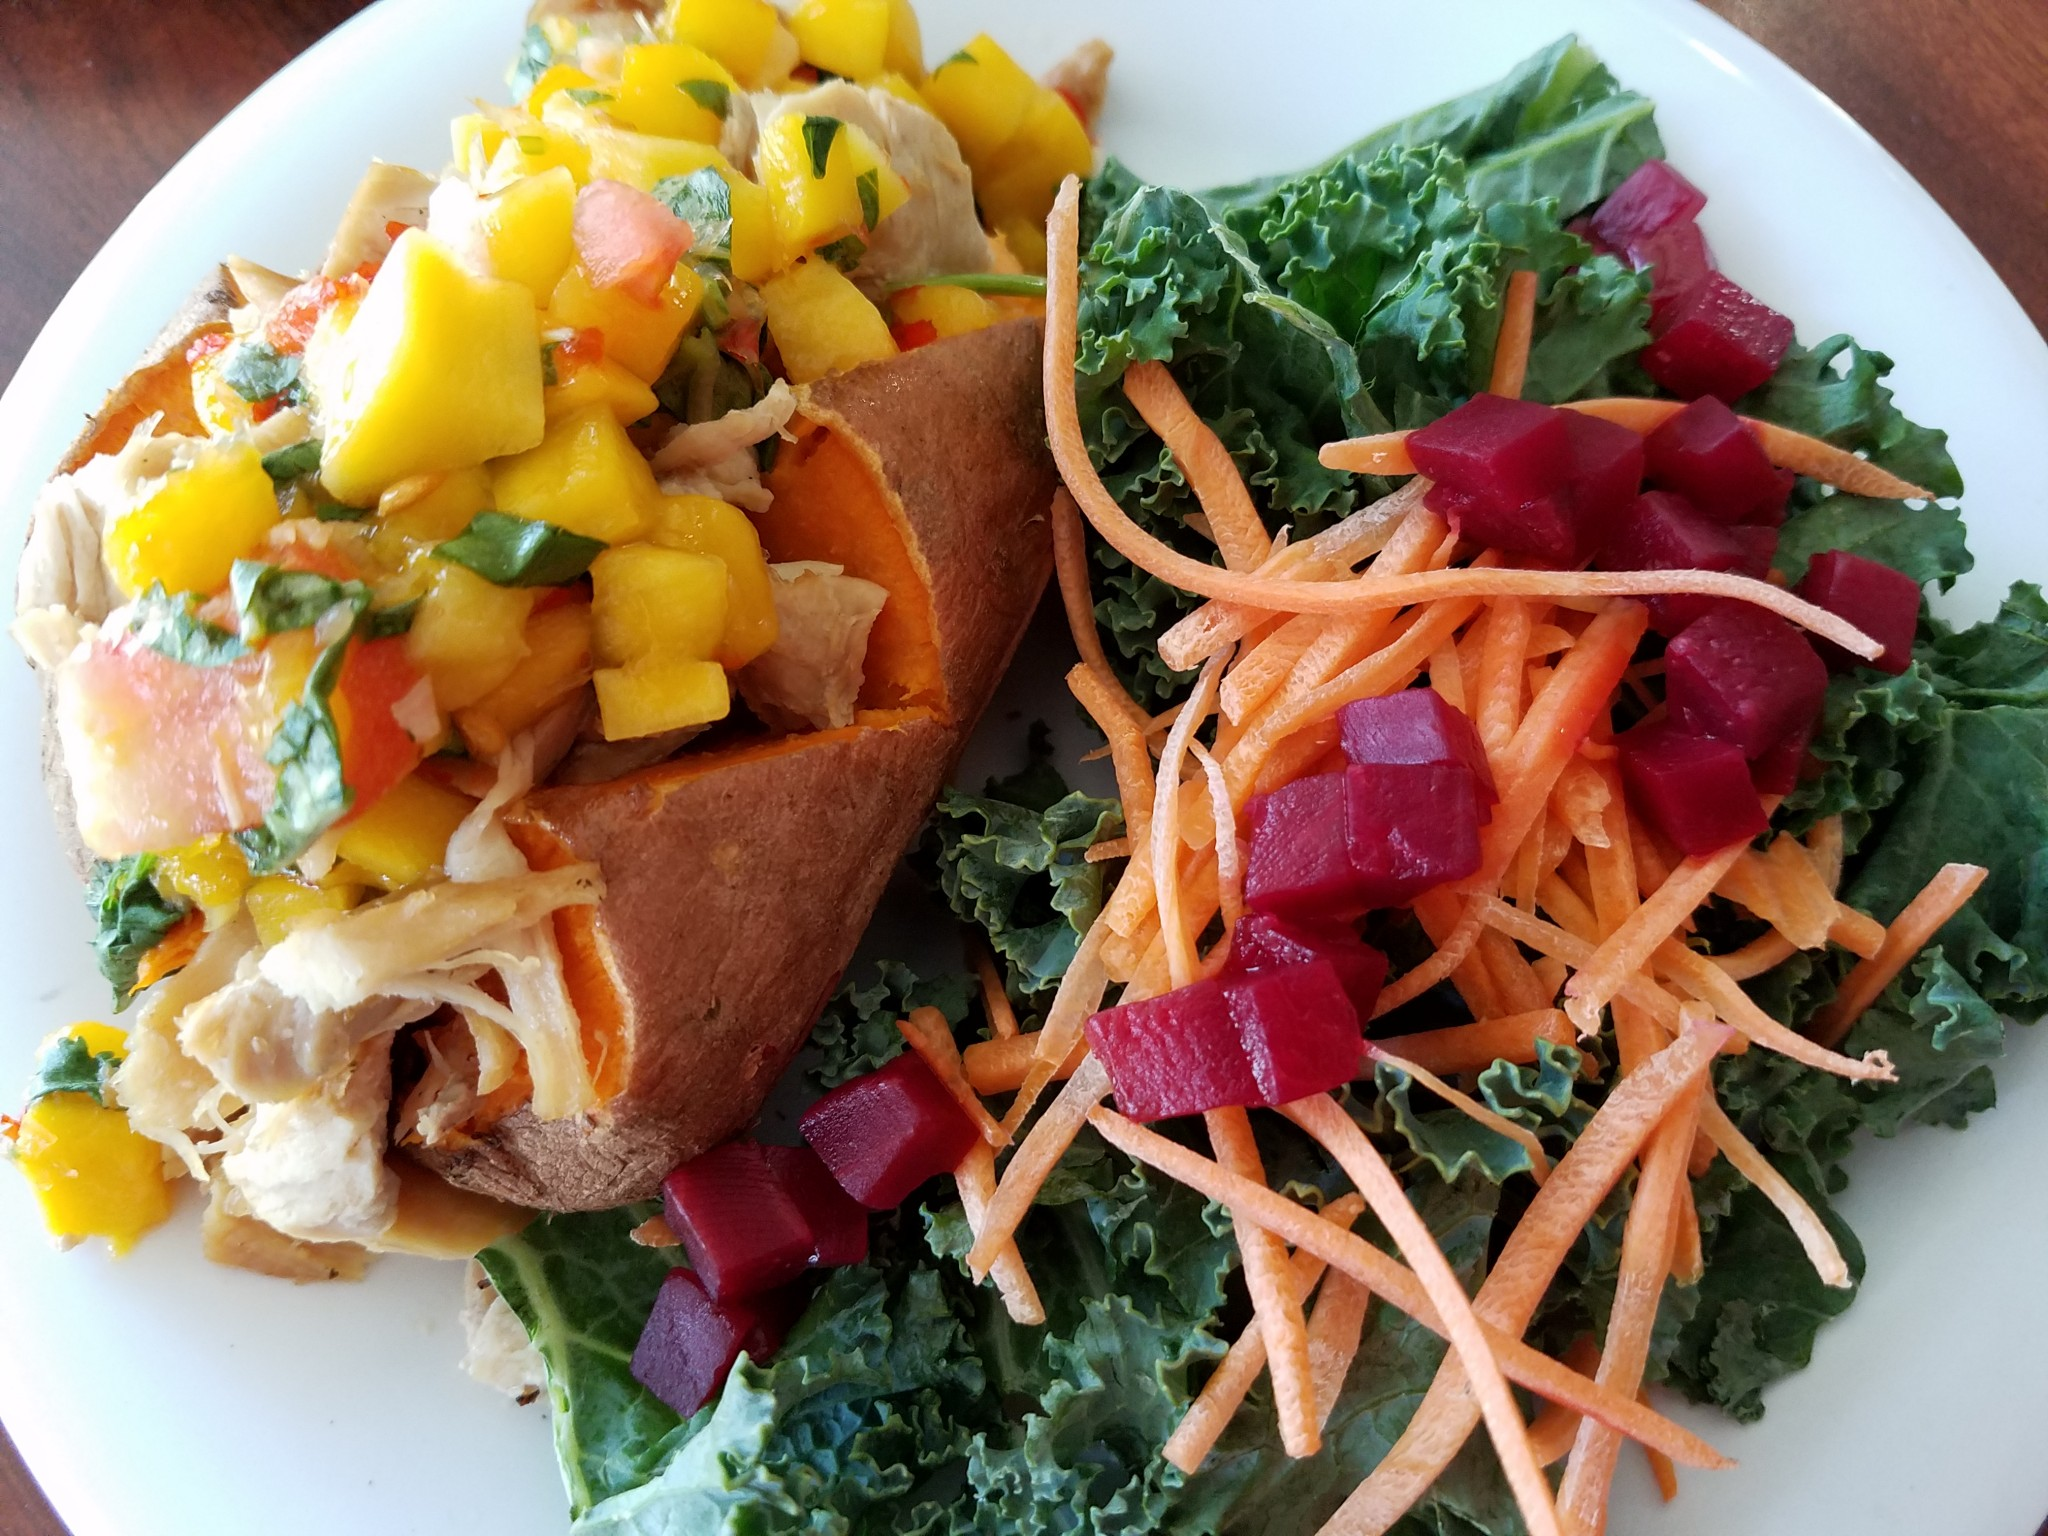 FINAL 5 Baked Sweet Potato with Chicken, Mango Salsa, Kale Salad (1)